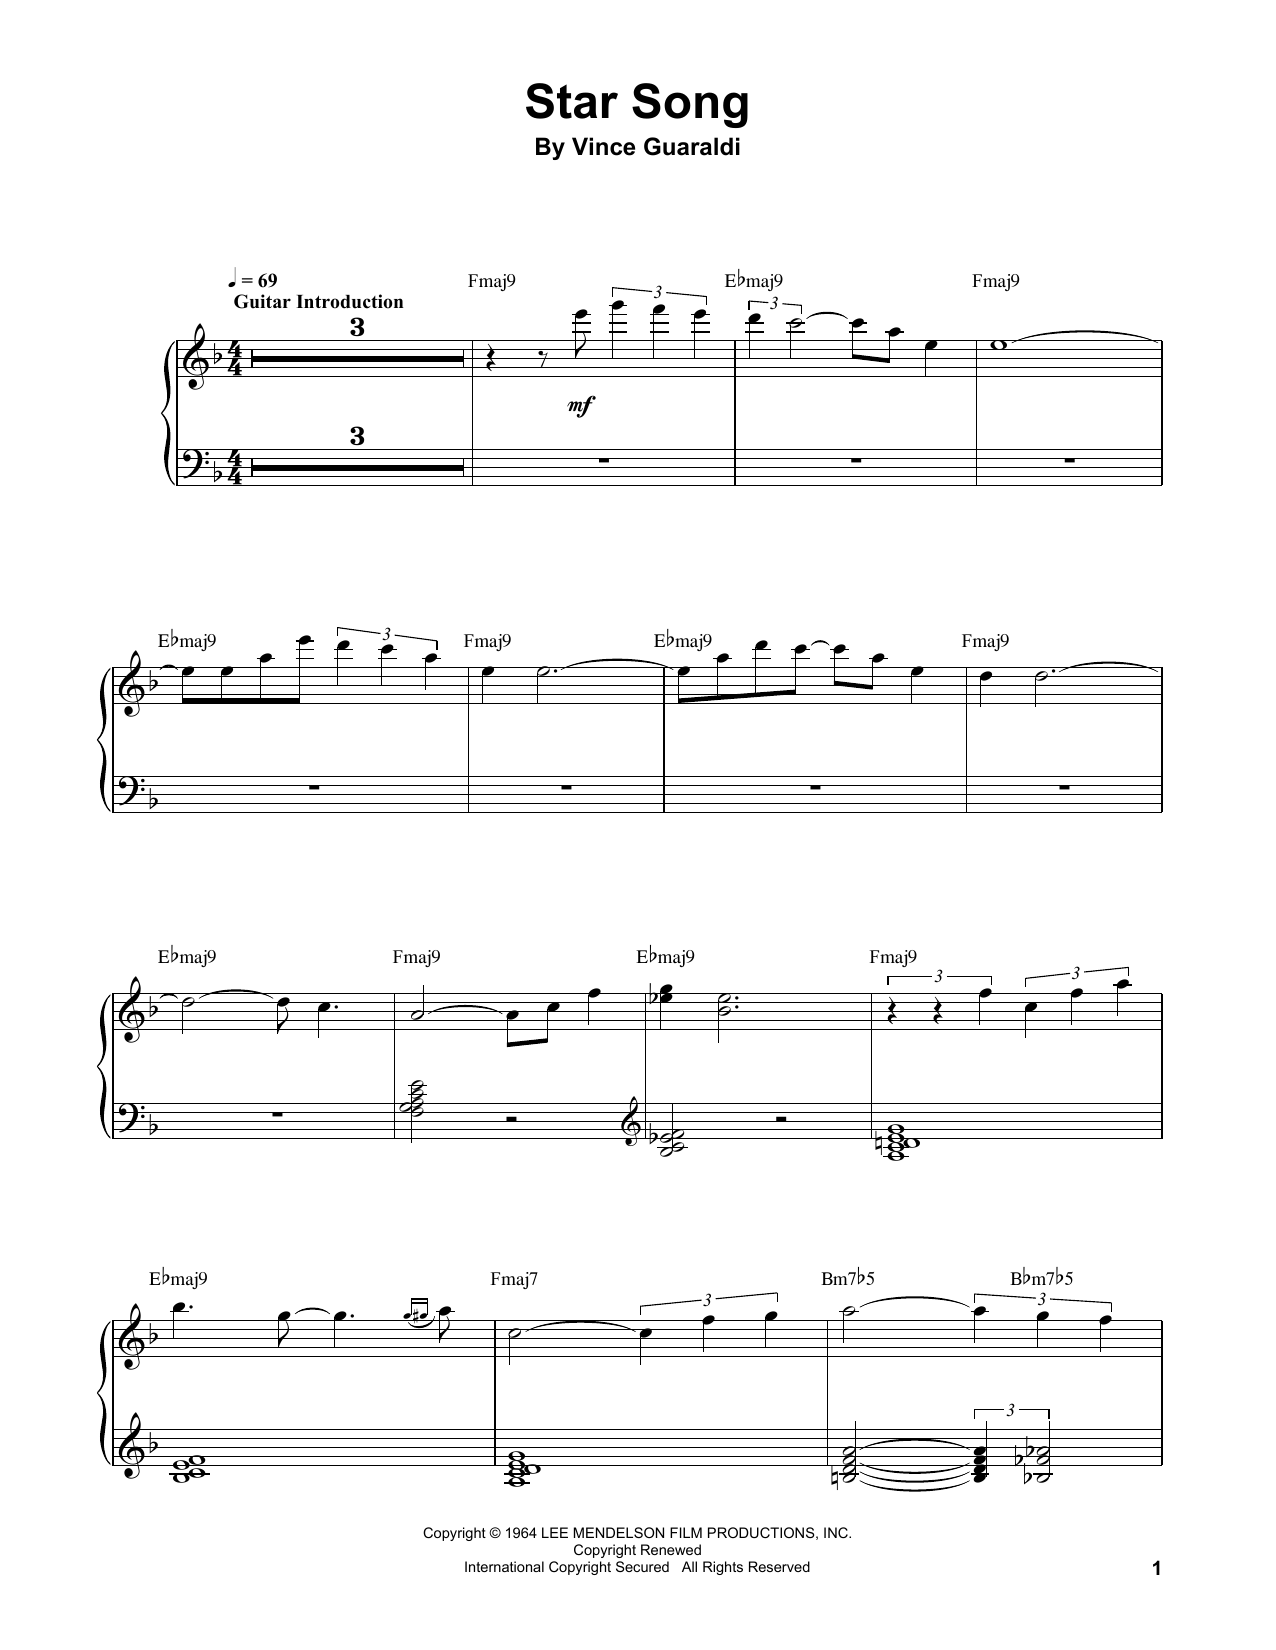 Vince Guaraldi Star Song sheet music notes and chords